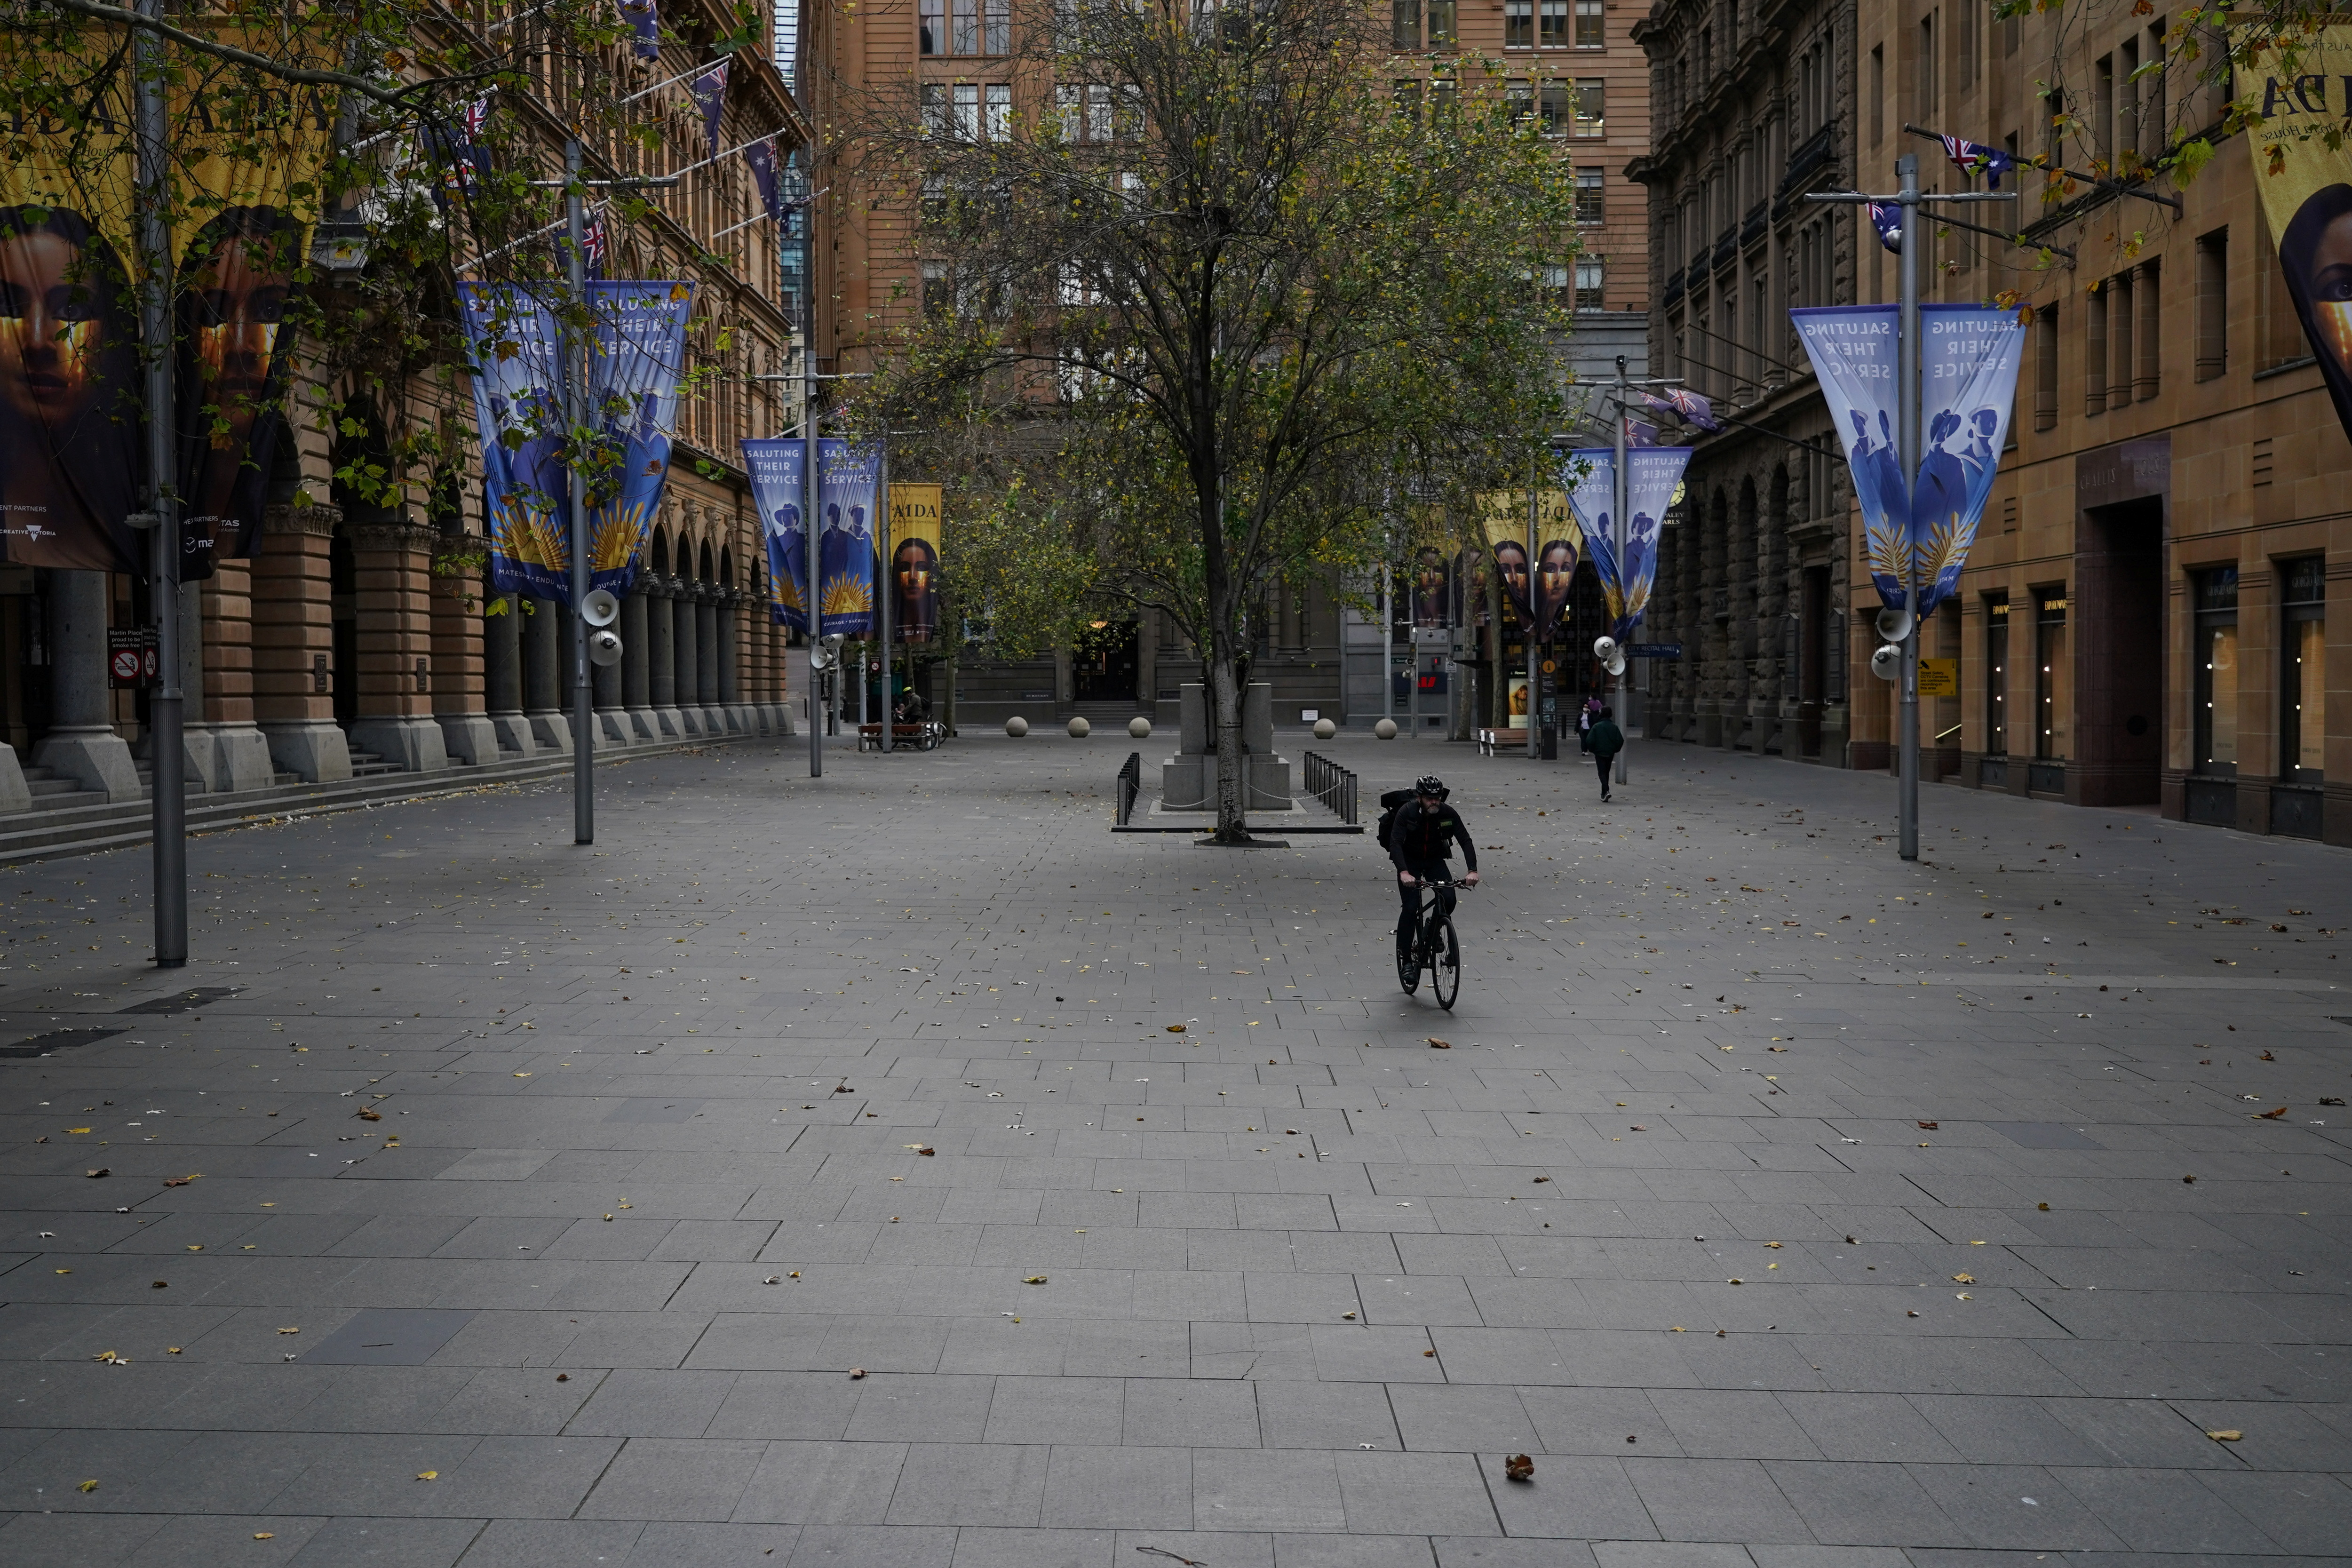 A lone cyclist rides through the empty Martin Place in the city centre during a lockdown to curb the spread of a coronavirus disease (COVID-19) outbreak in Sydney, Australia, July 28, 2021.  REUTERS/Loren Elliott